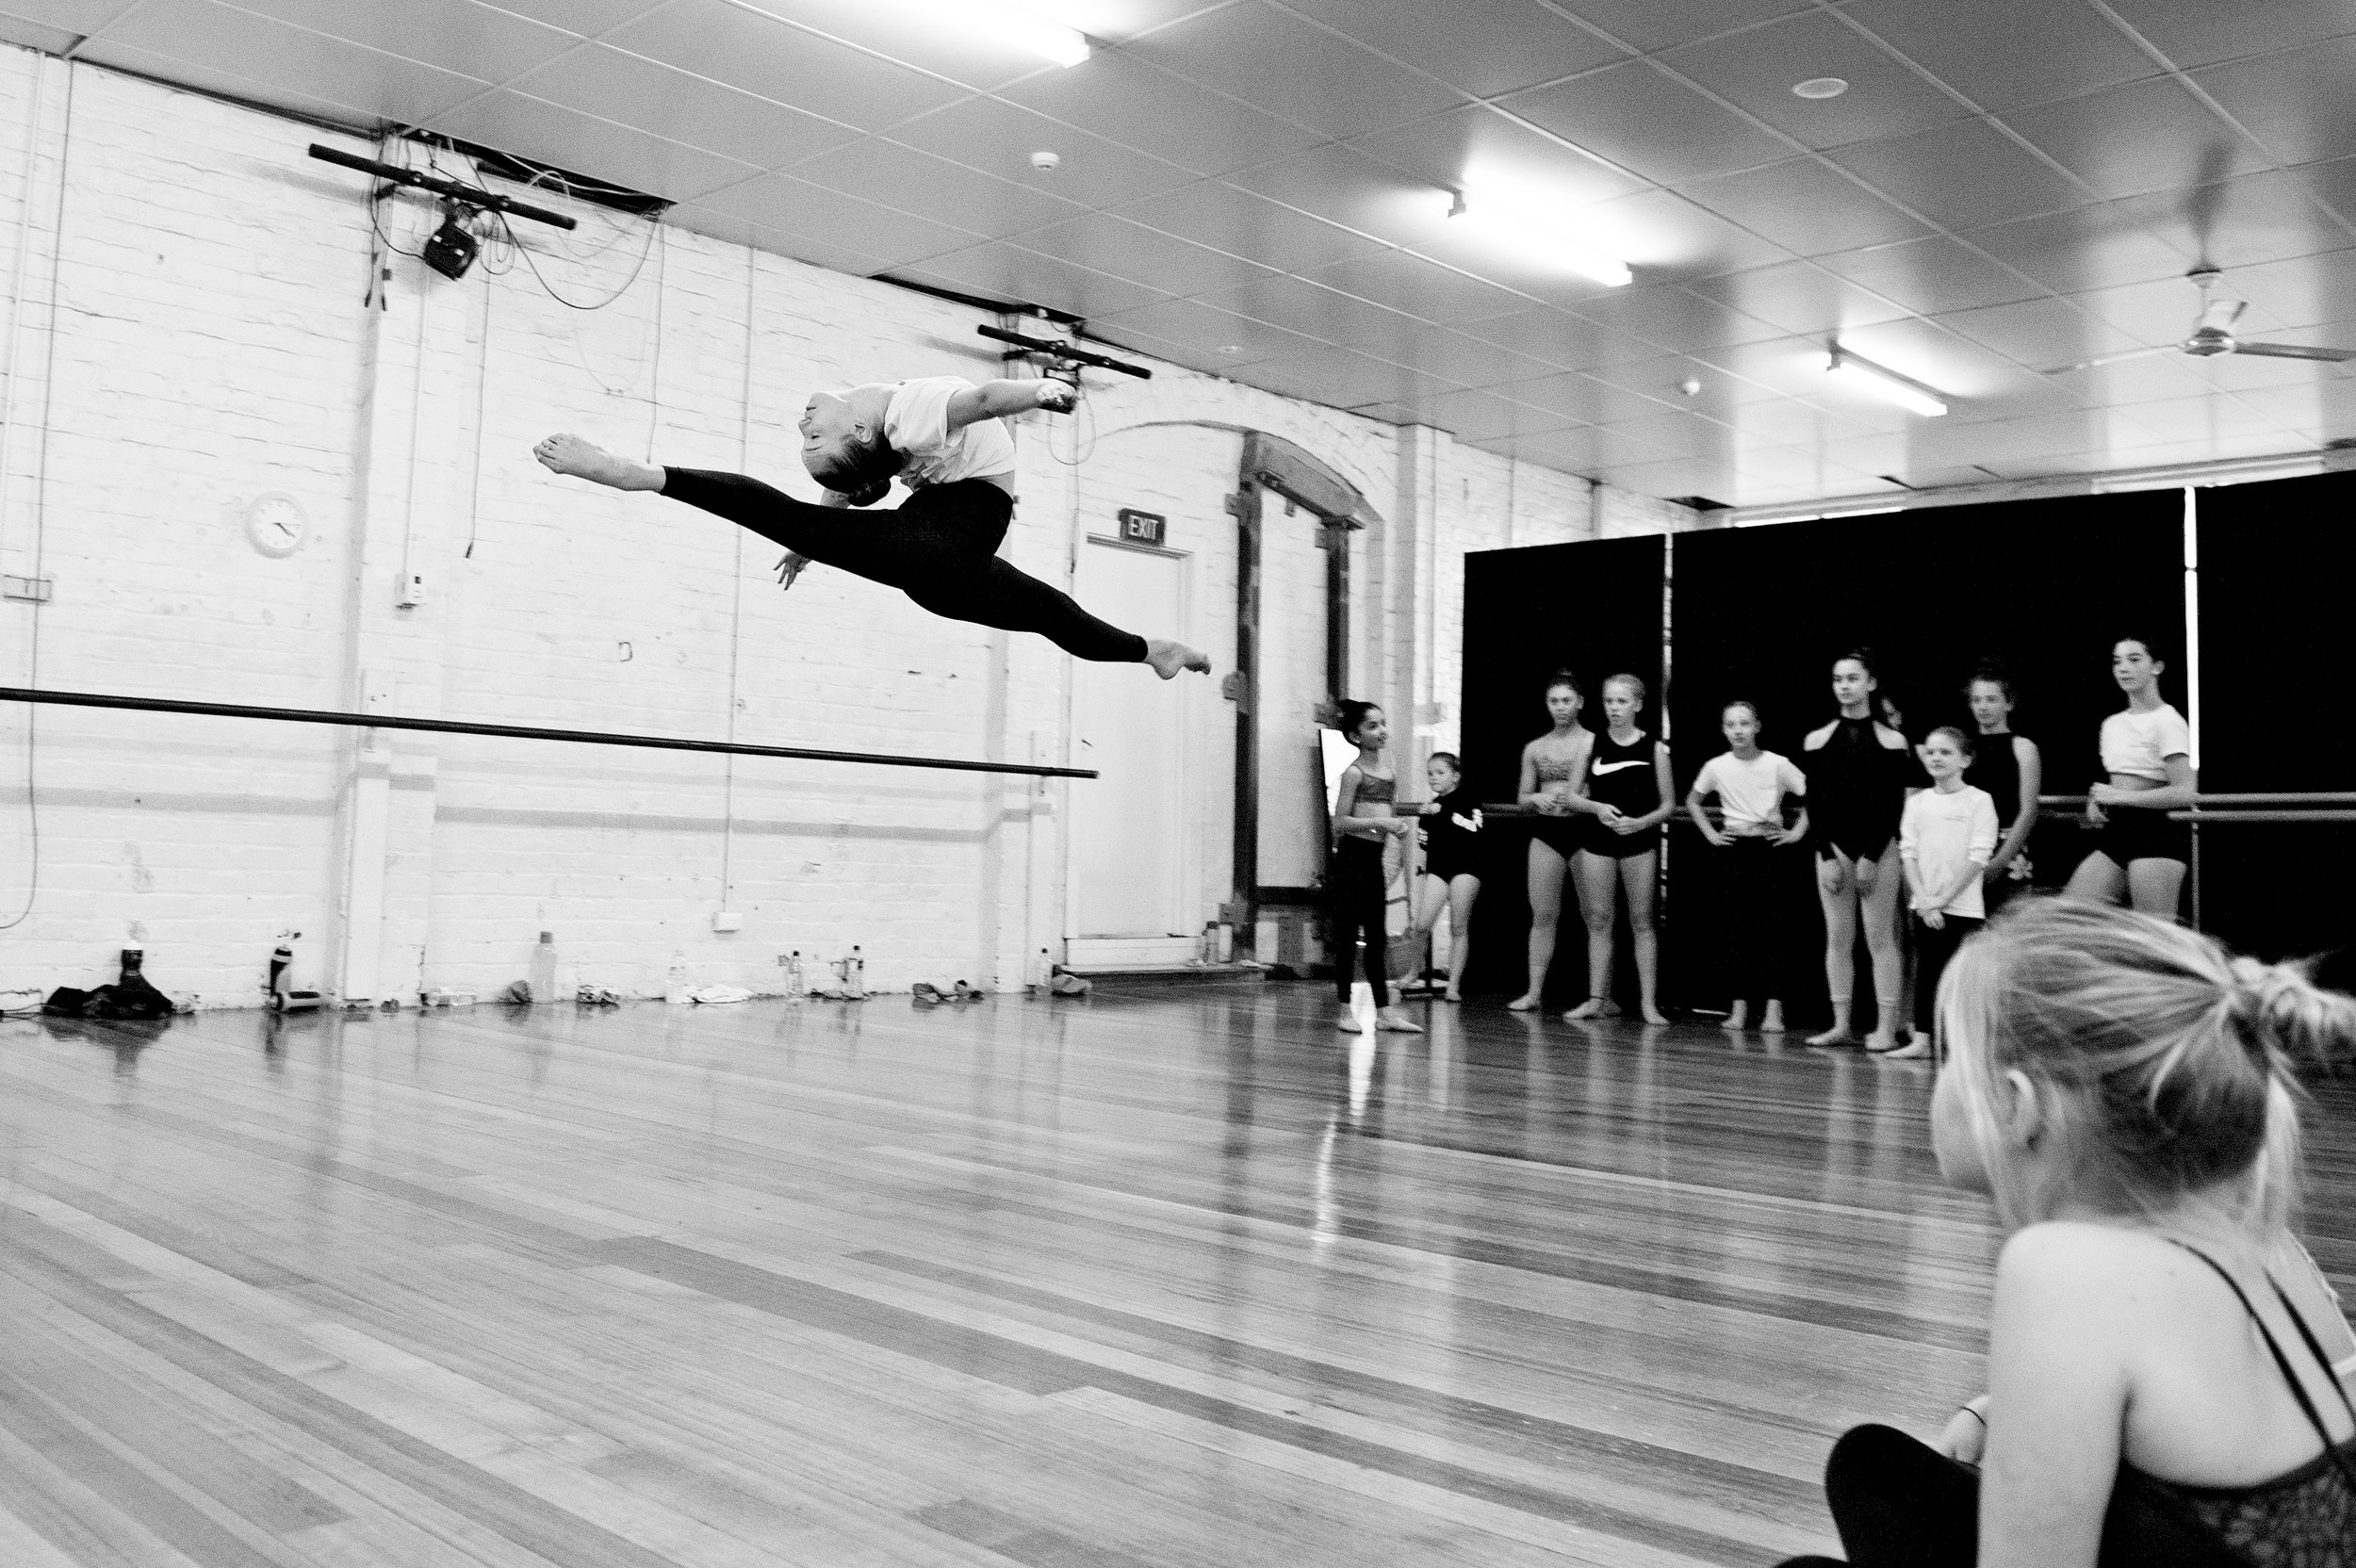 Technique for jumps and leaps  Learn the 4 key elements of jumps to break down, analyse and improve any airborne feat and leap with finesse in any position. Kick start your height, execution and difficulty to make your audience gasp in disbelief - GIRLS it's time we took jumping back into our own territory and stopped letting the boys get all the glory!